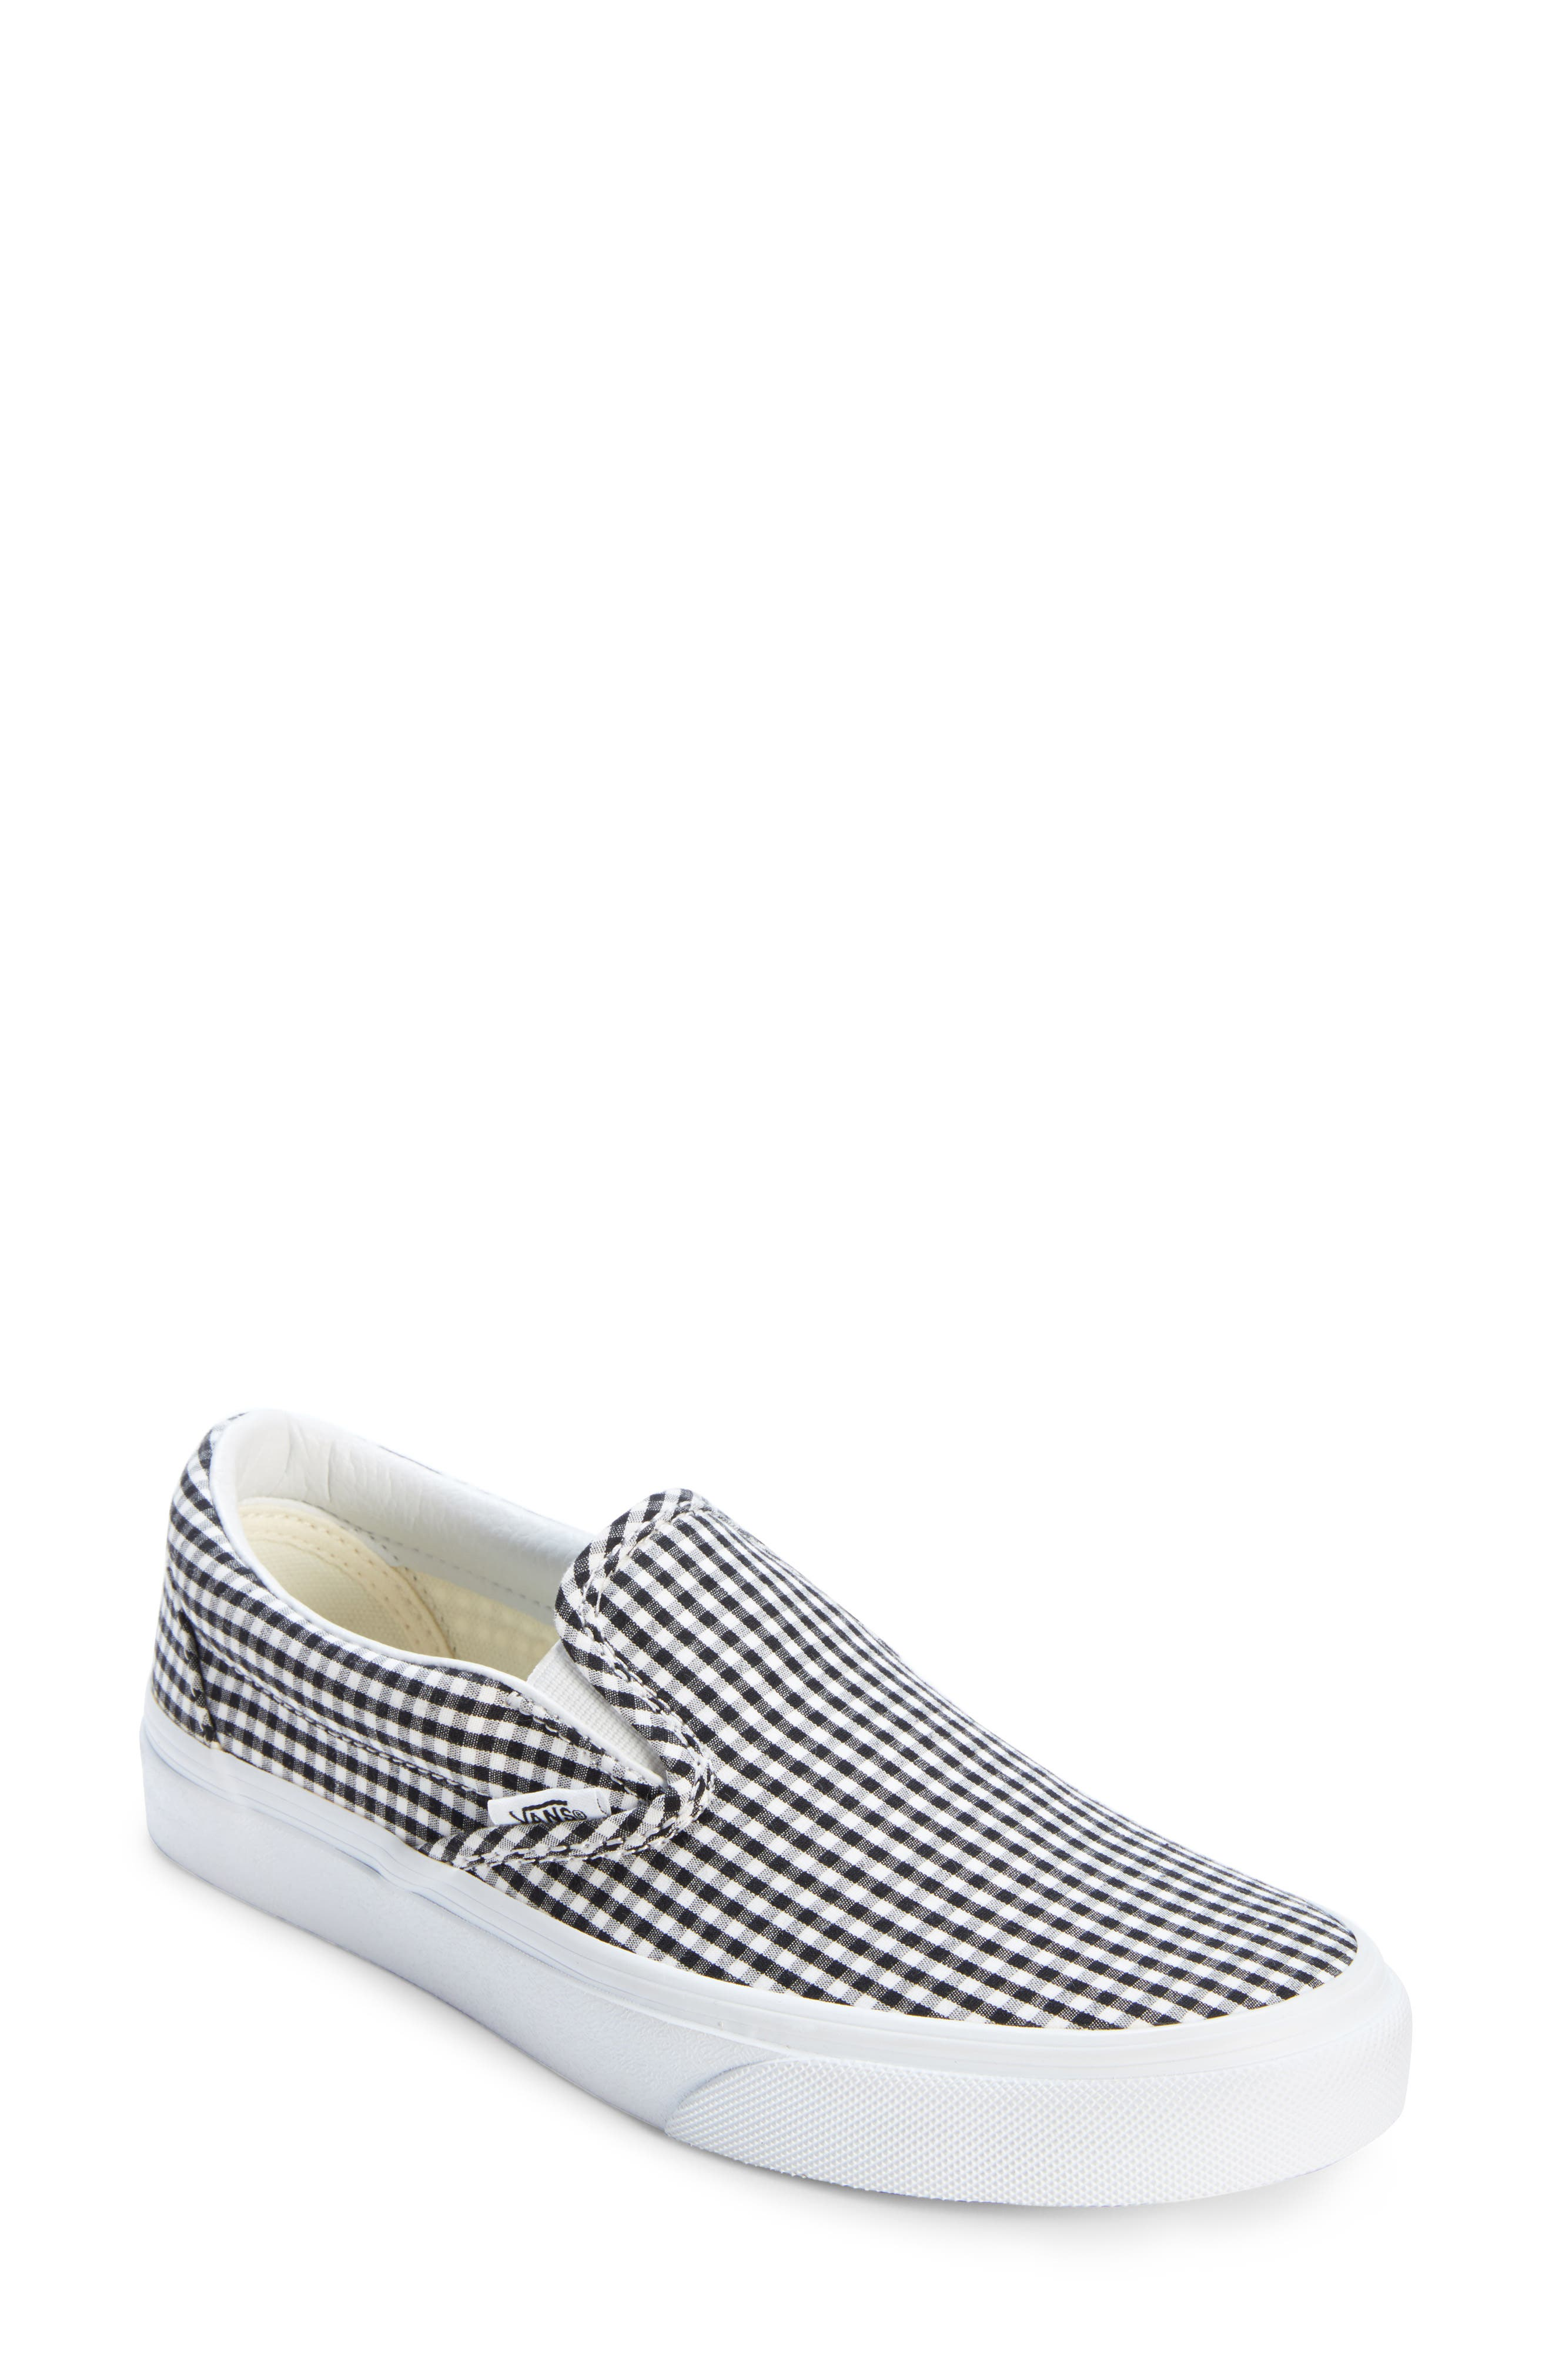 Classic Slip-On Sneaker,                             Main thumbnail 1, color,                             Black/ True White Gingham